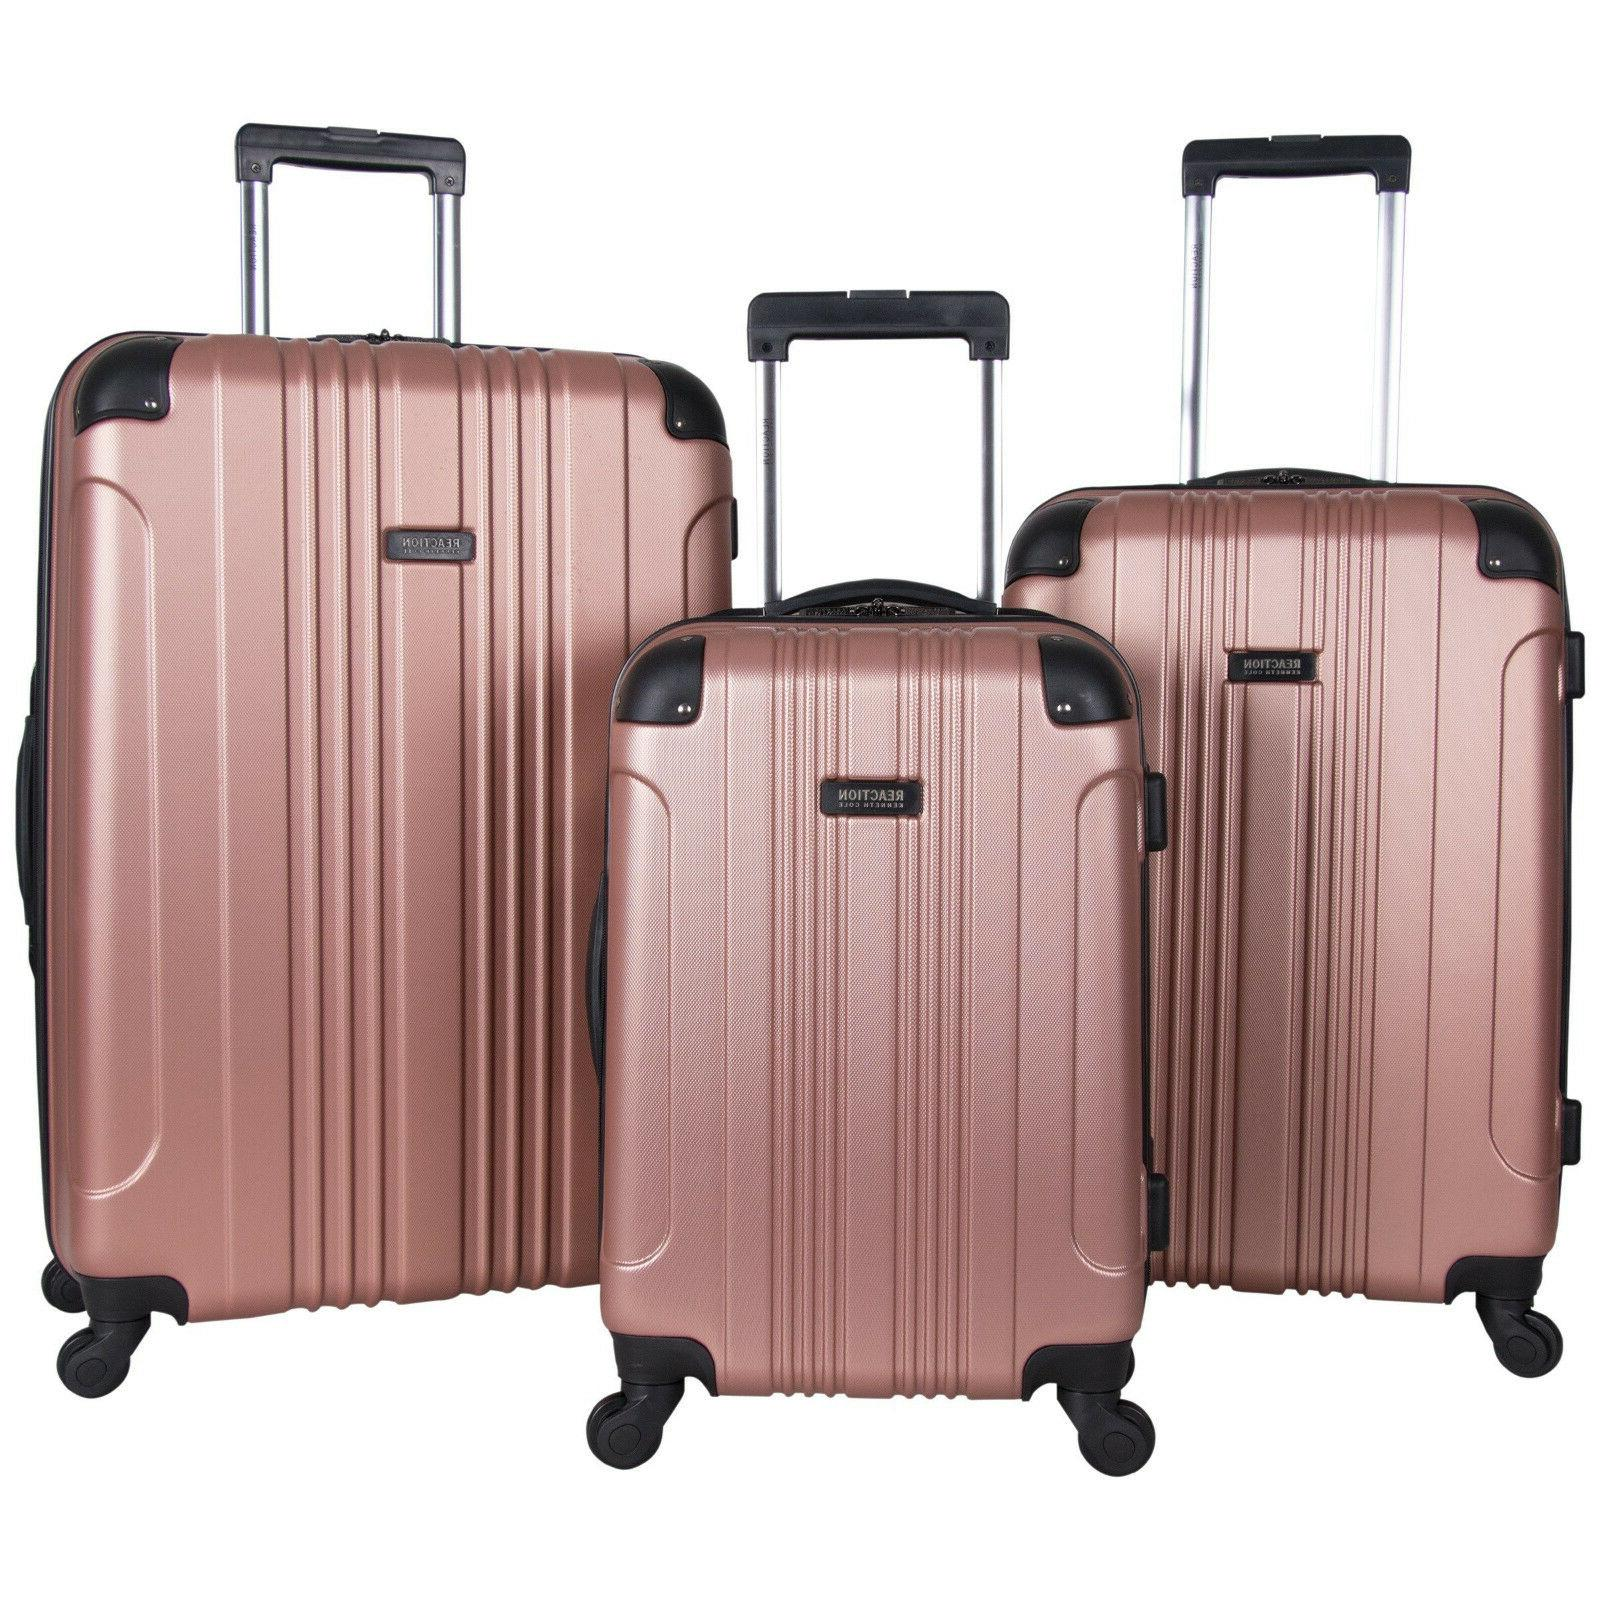 Kenneth of Hardside Spinner Luggage Set PICK